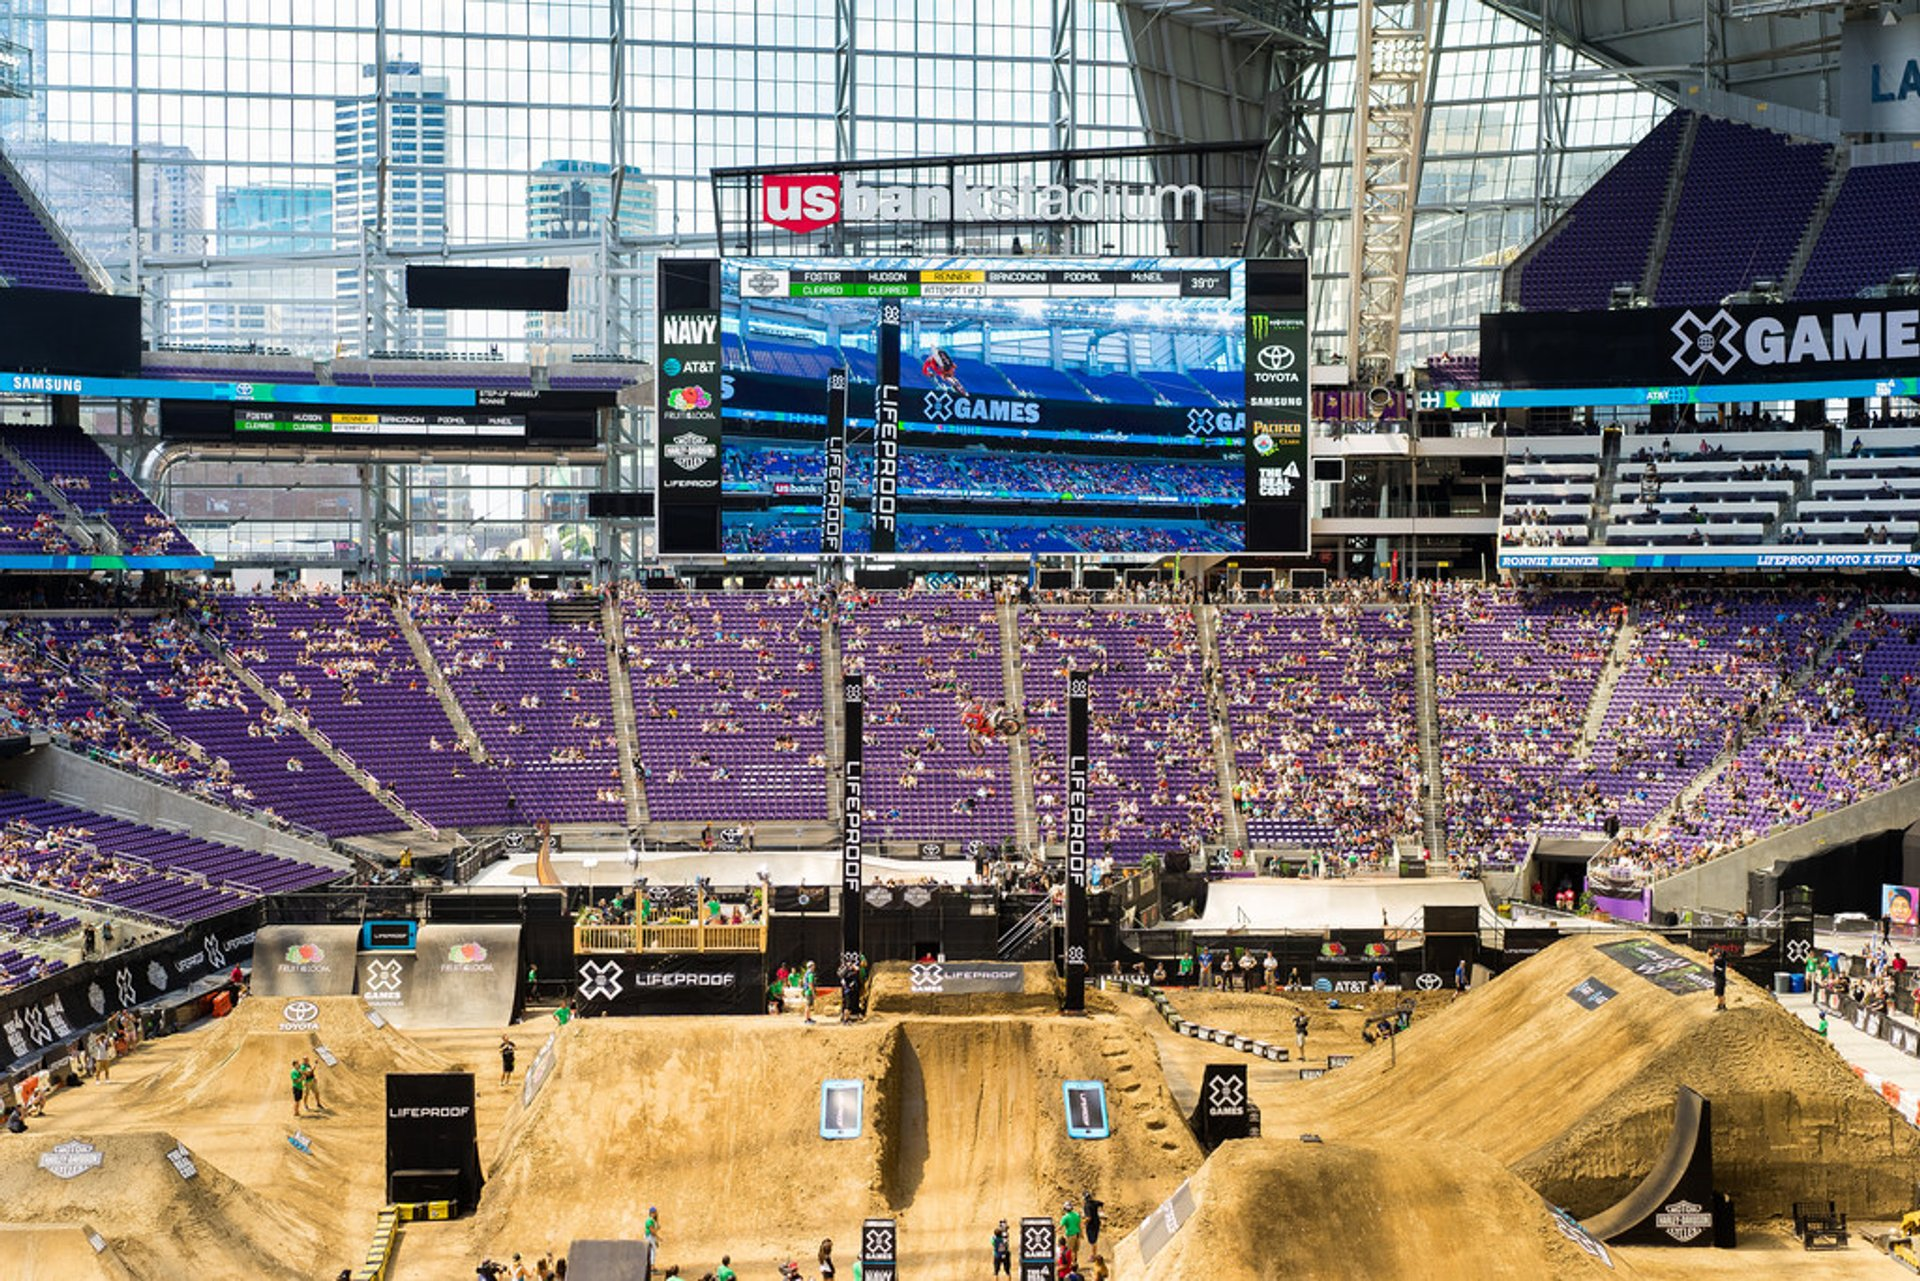 X Games Minneapolis in Midwest - Best Season 2020